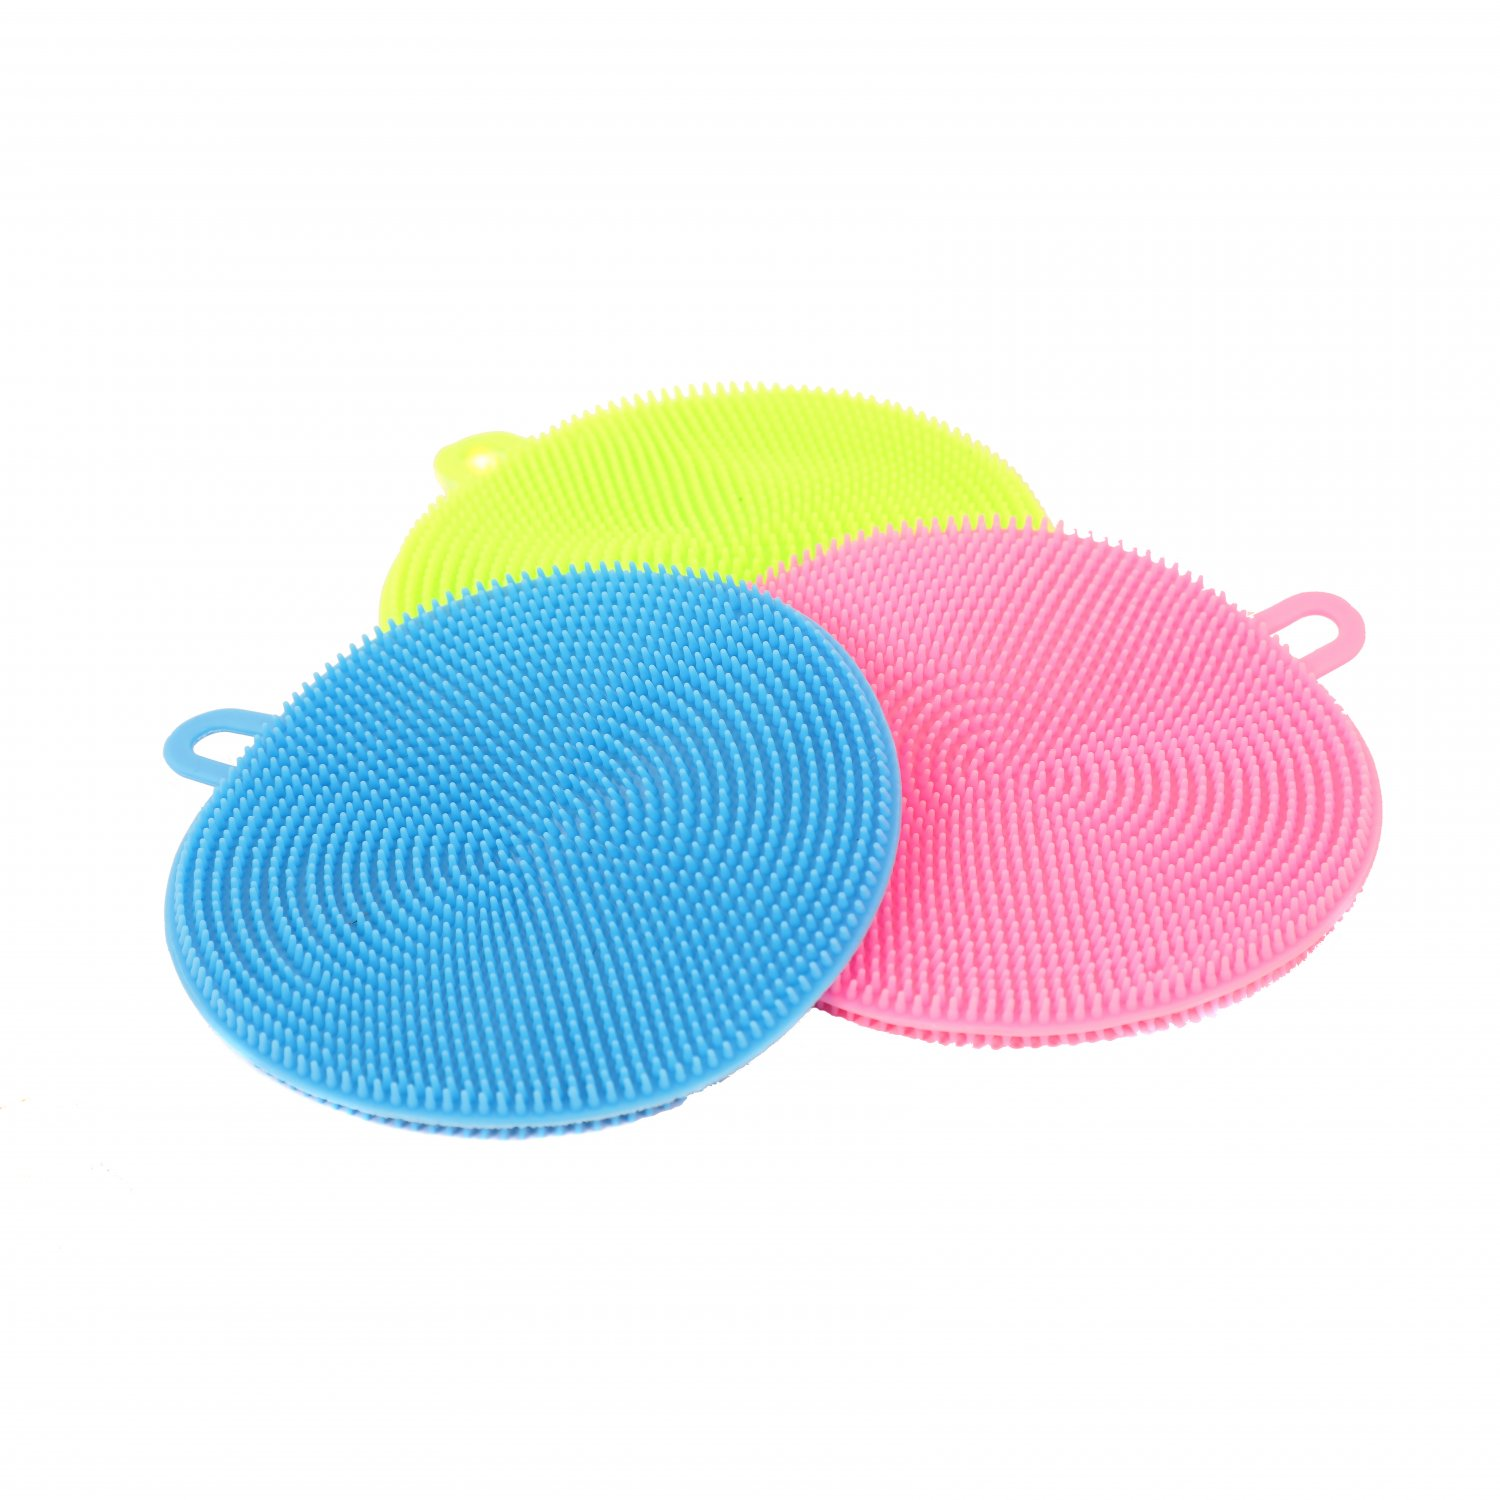 Set of 3 Silicone Scrubber Brush Dish Wash Cleaning Sponge Pads